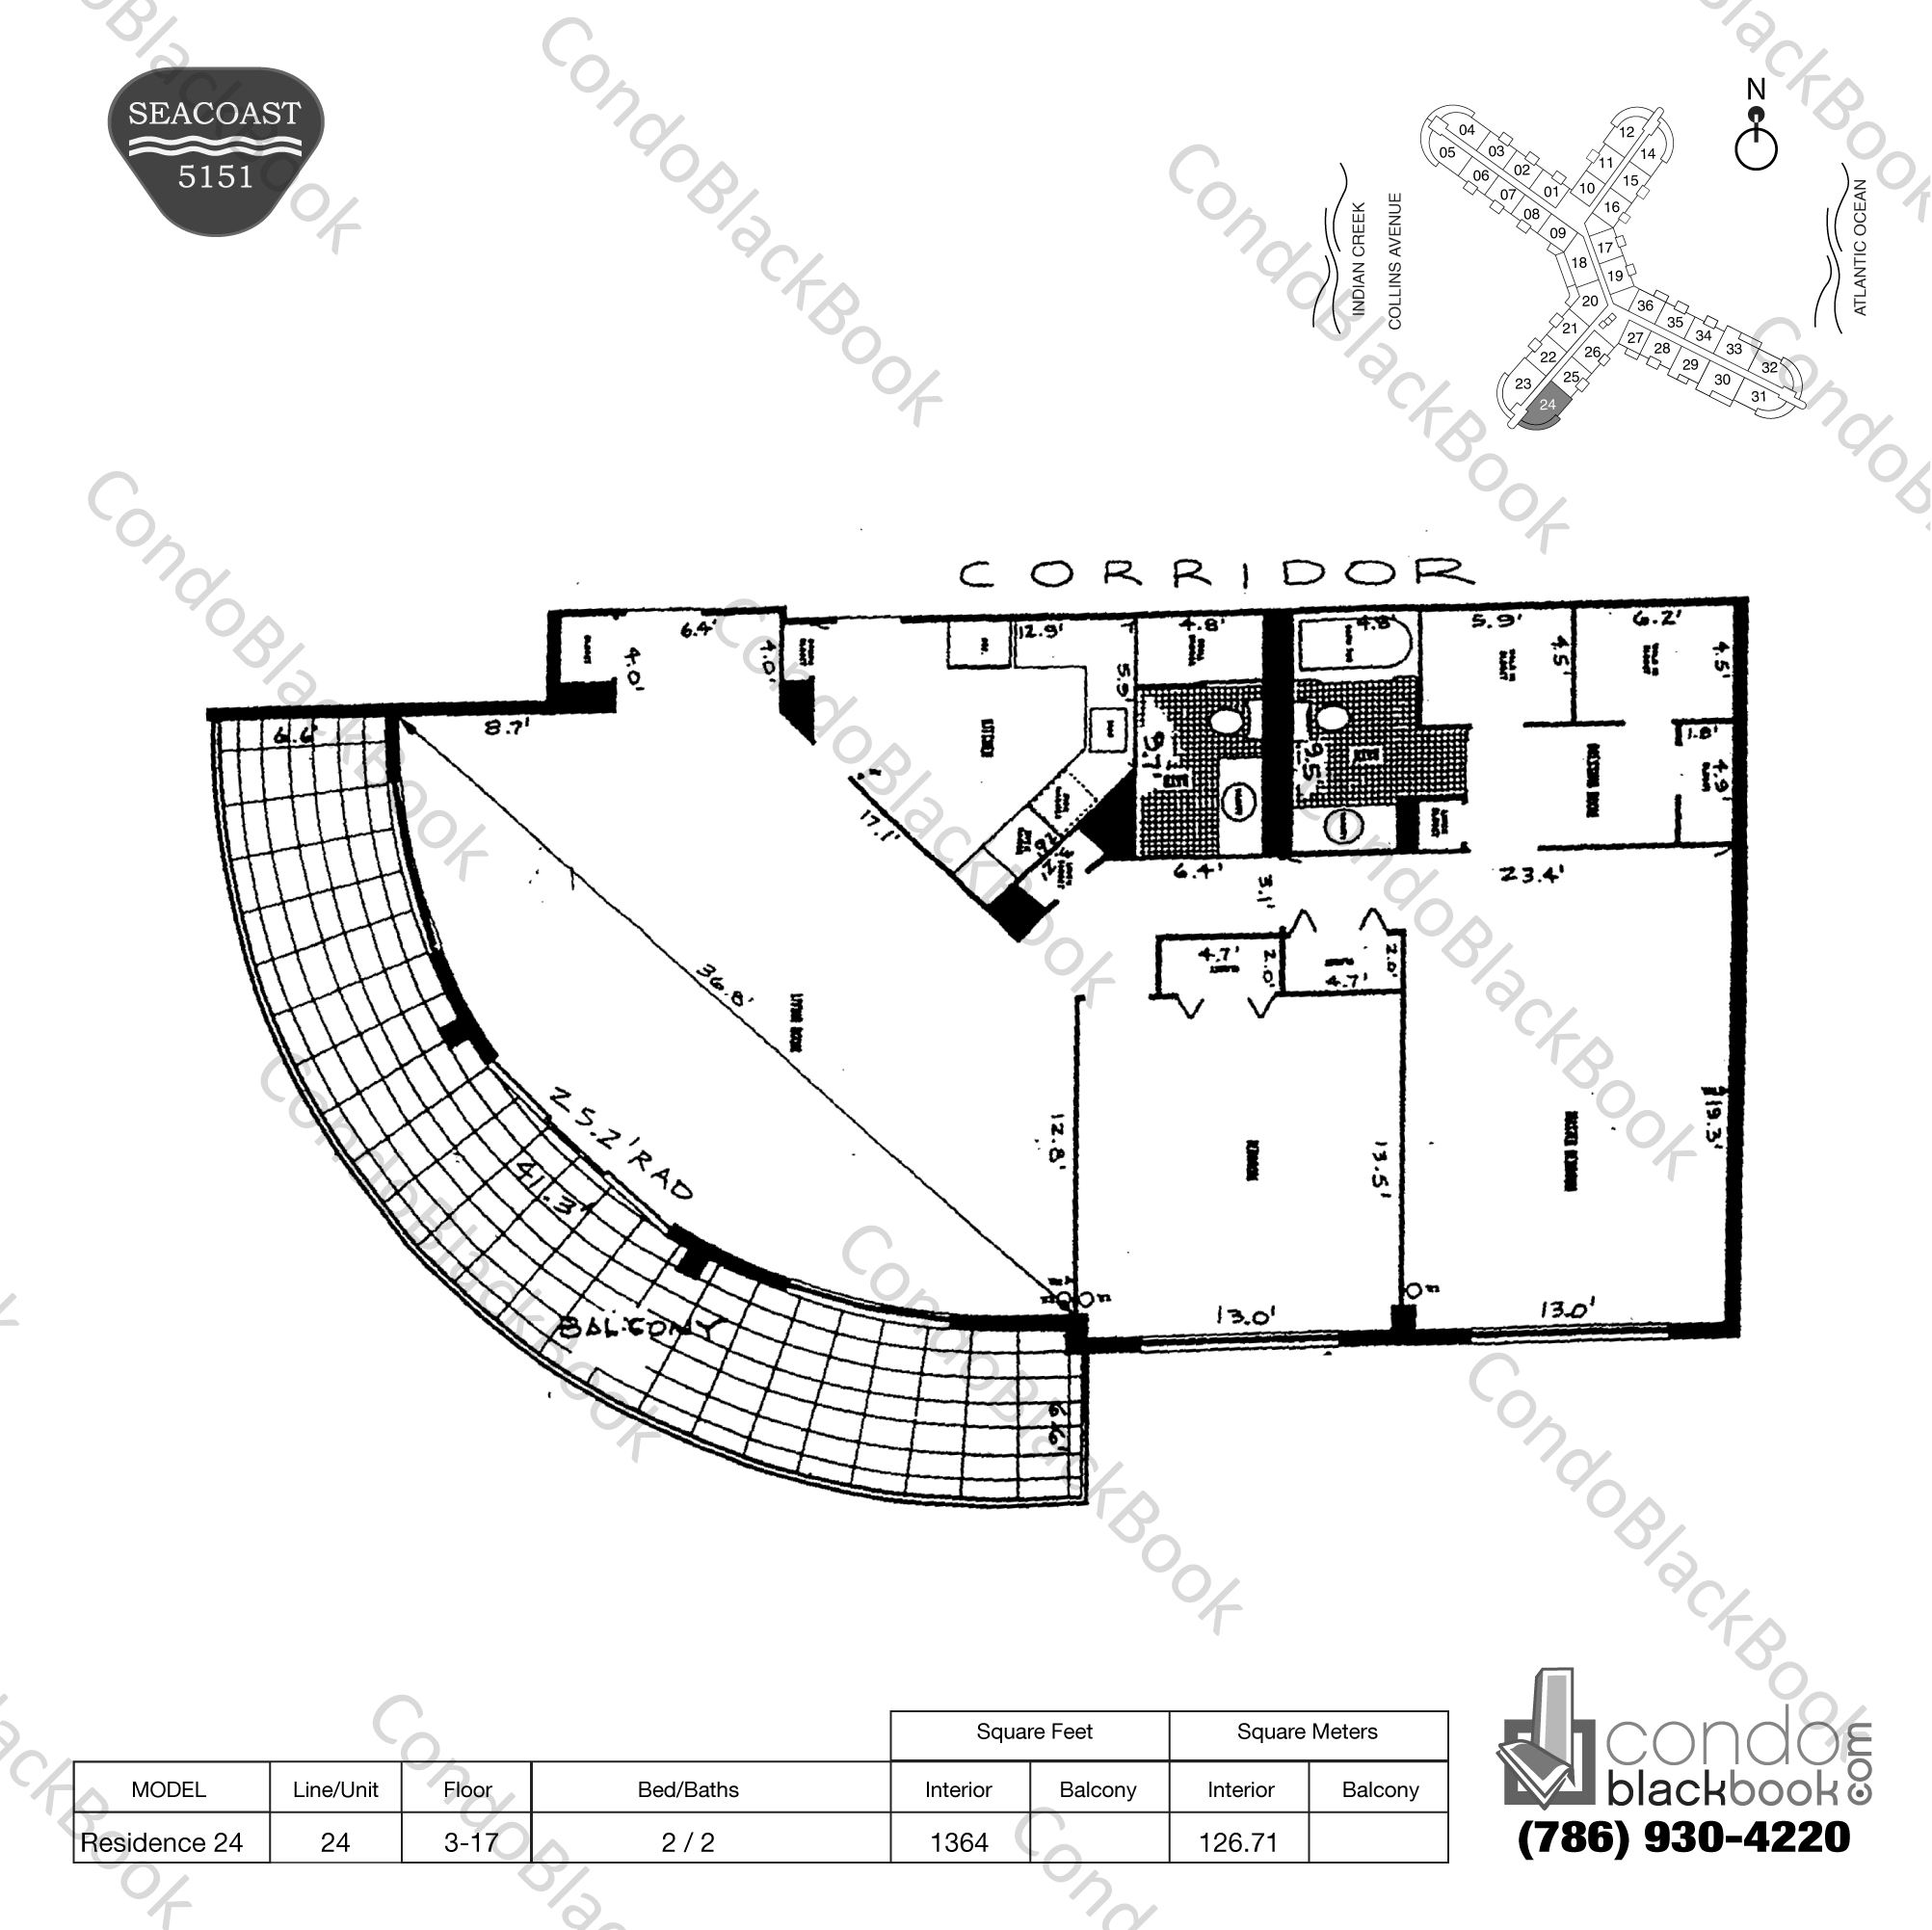 Floor plan for Seacoast 5151 Mid-Beach Miami Beach, model Residence 24, line 24, 2 / 2 bedrooms, 1364 sq ft